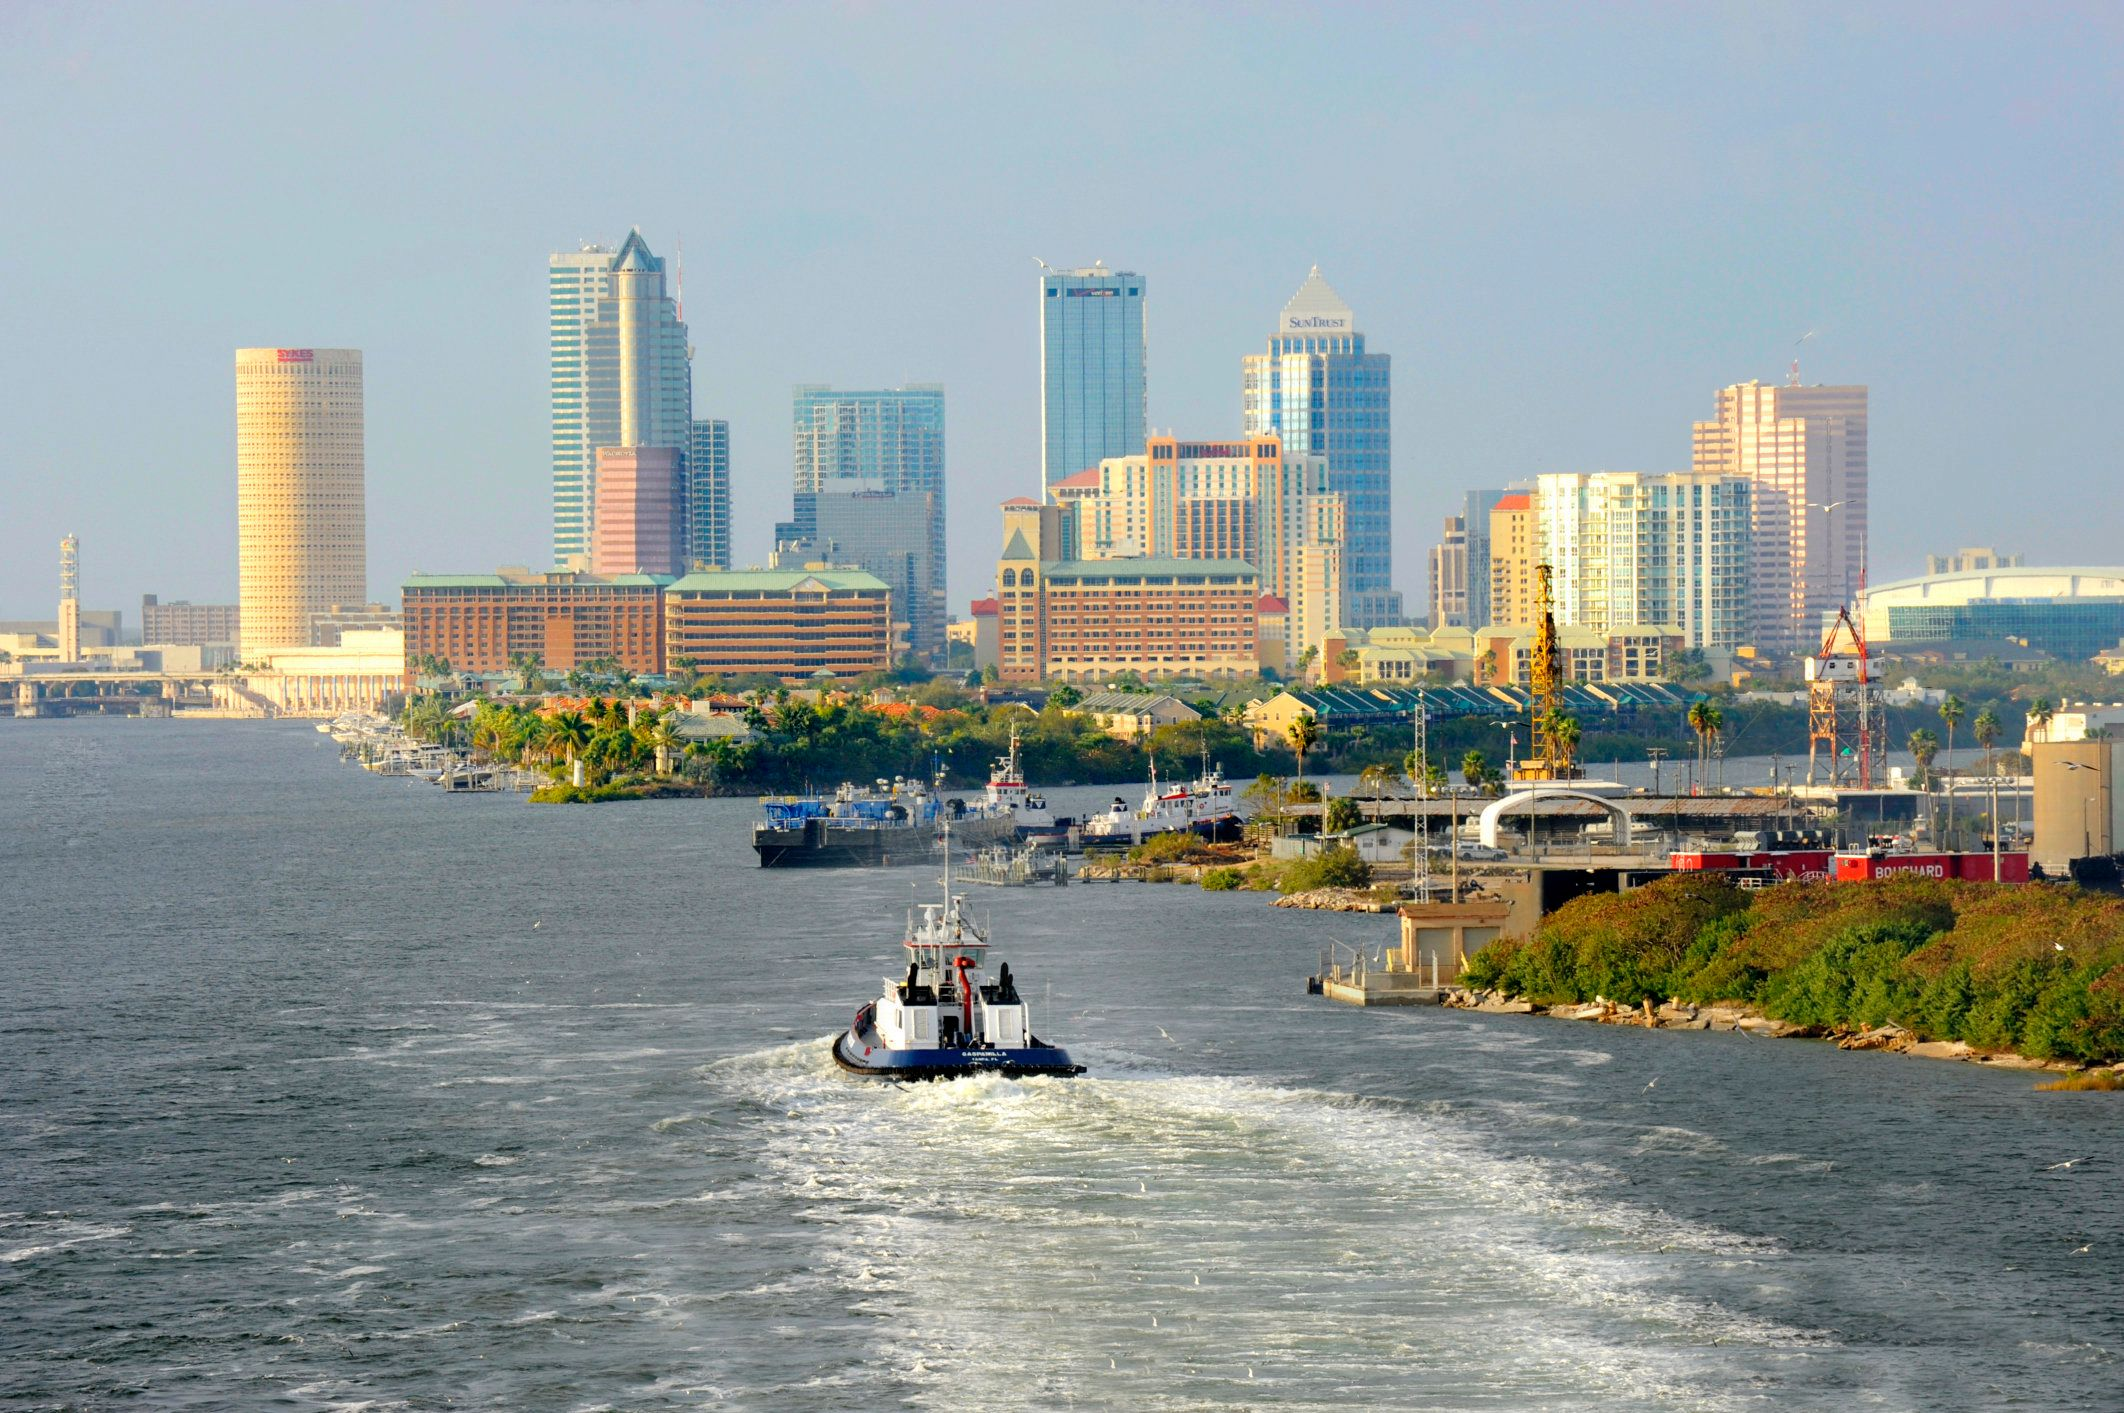 Downtown skyline from cruise ship, Tampa, Florida